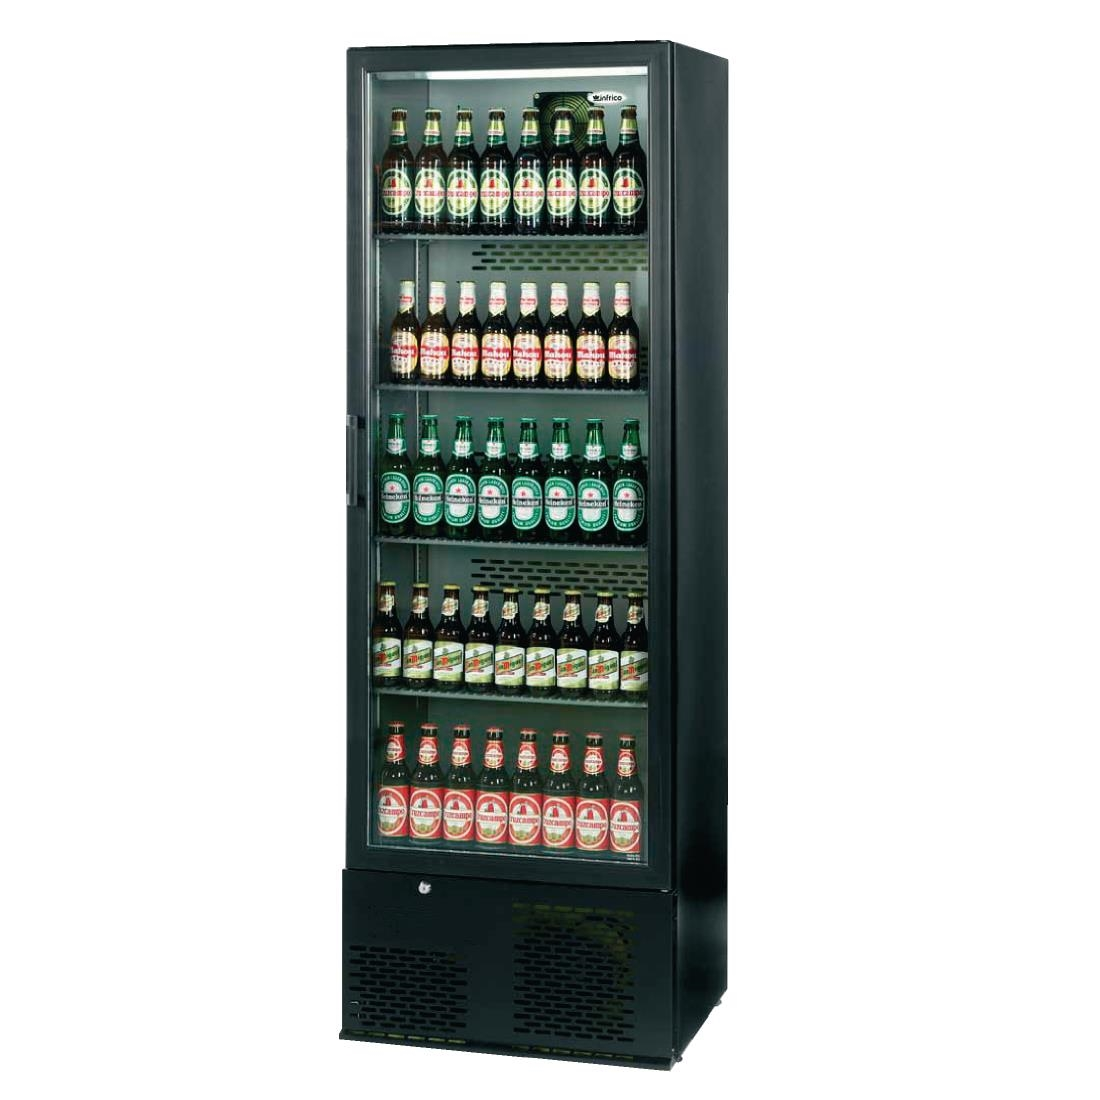 Image of Infrico Upright Back Bar Cooler with Hinged Door in Black ZX10